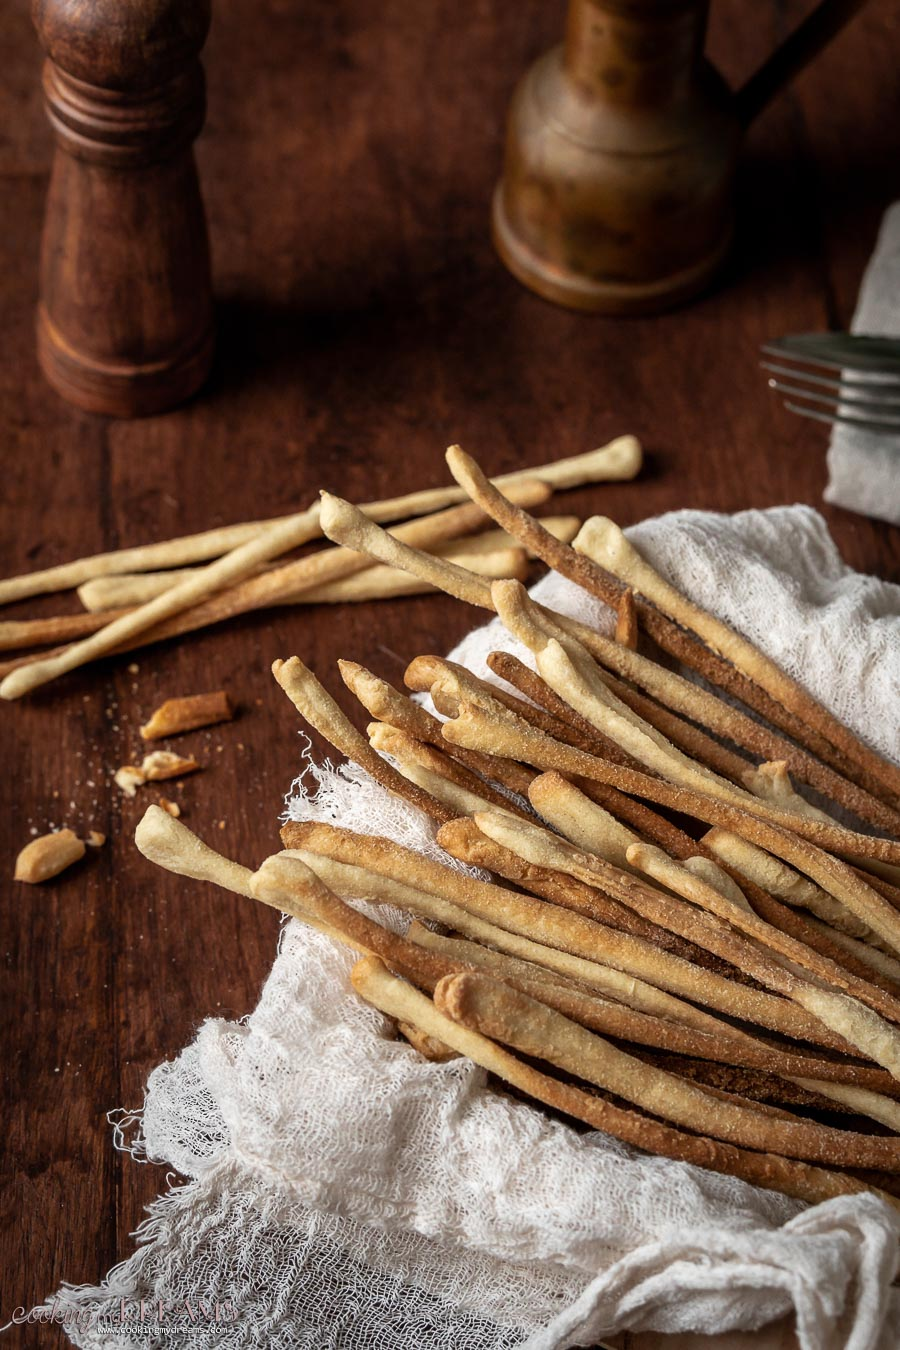 grissini breadsticks in a basket and on the table